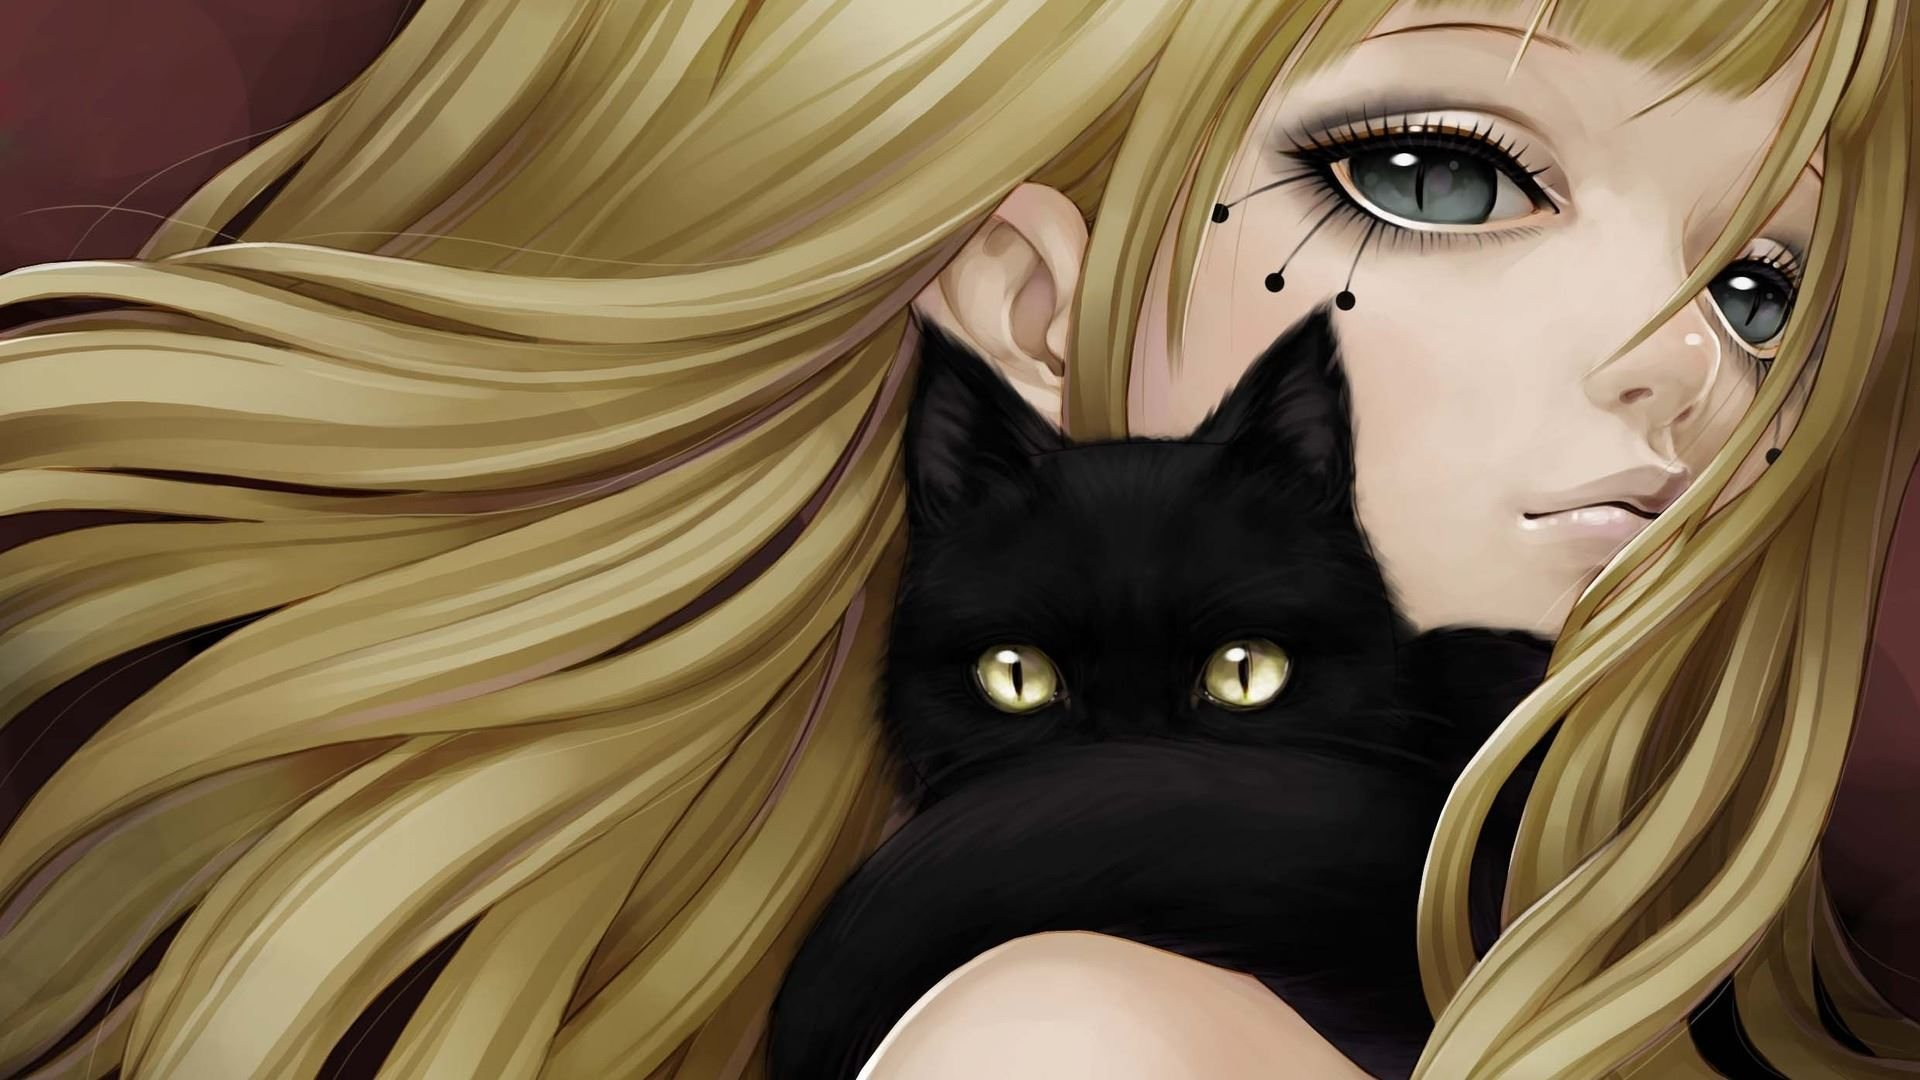 Anime Girl And Black Cat - High Definition Wallpapers - HD ...